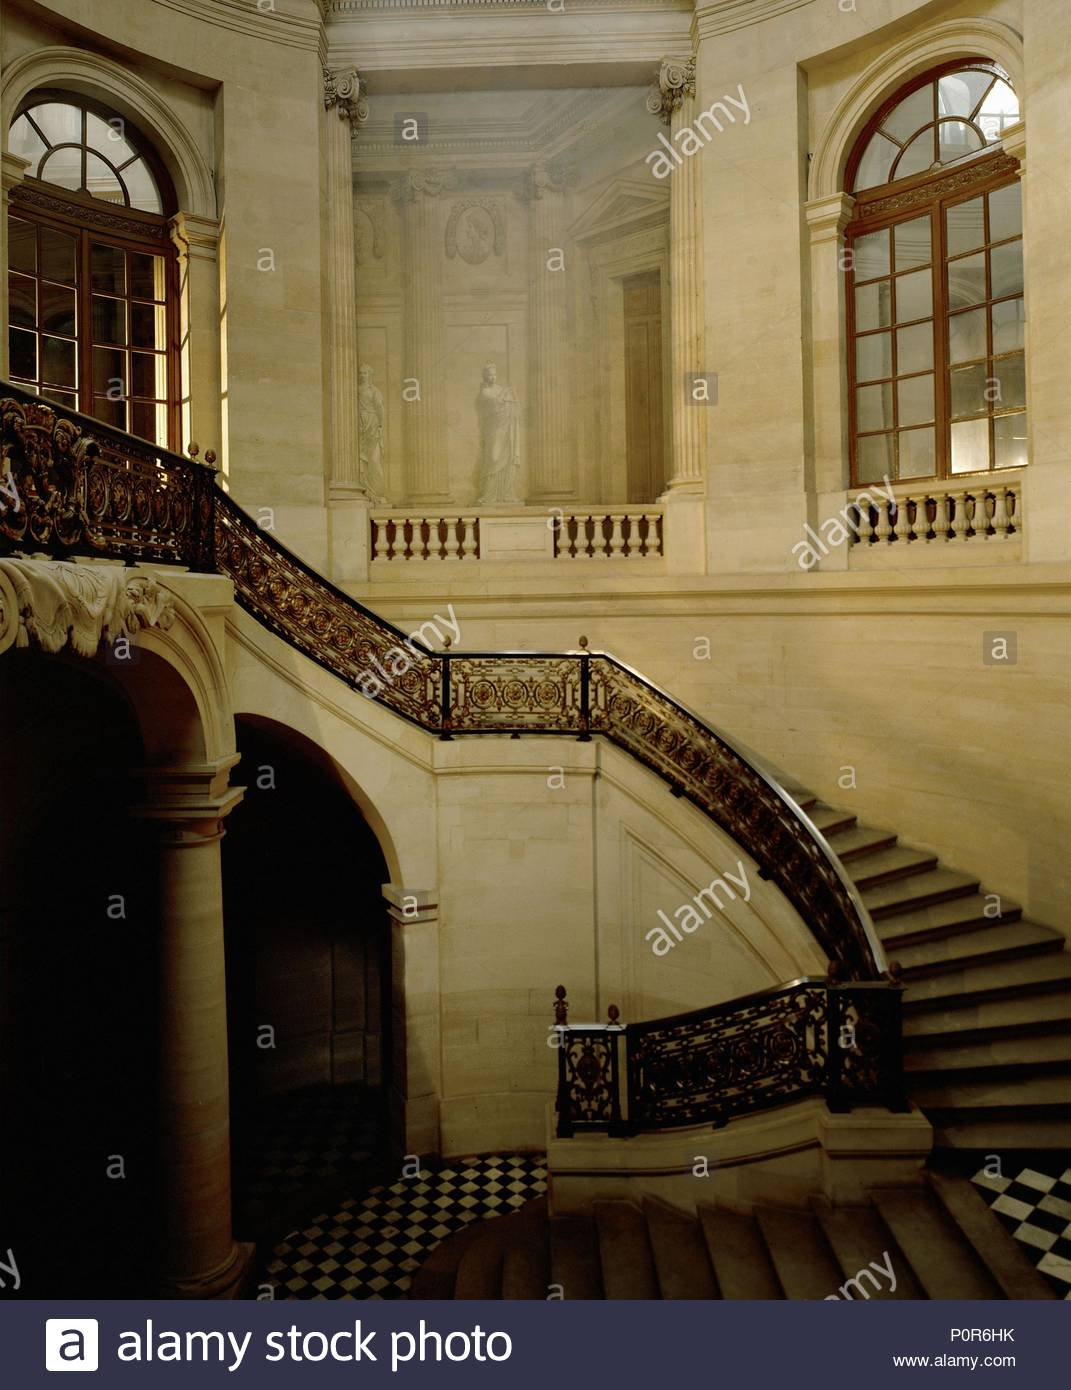 palais royal escalier d honneur designed by contant d ivry the